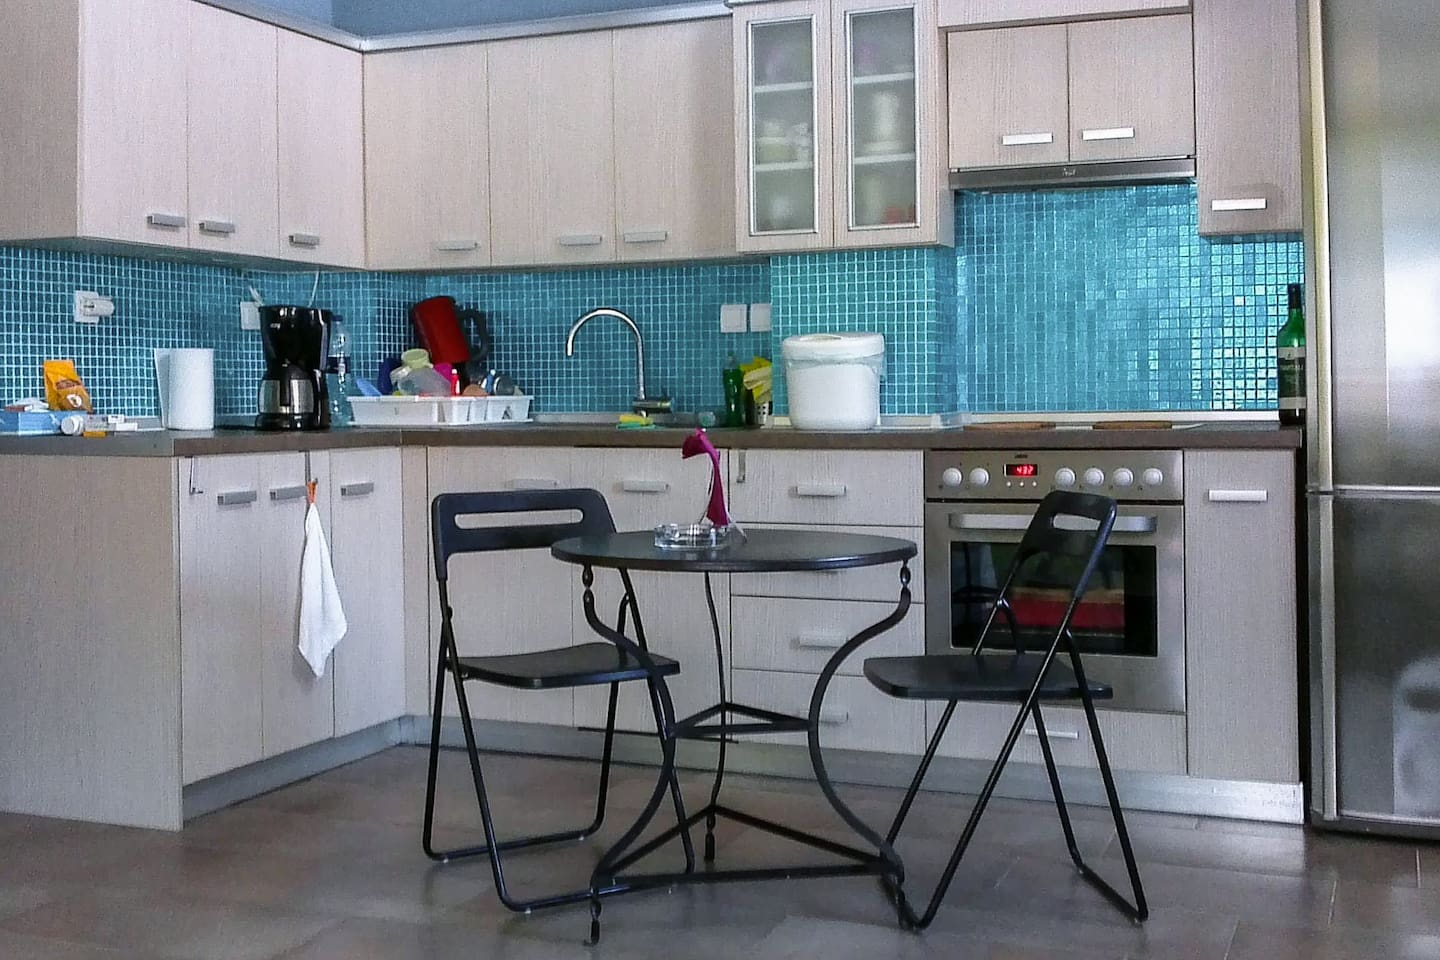 House of Joy-2 - Houses for Rent in Axioupoli, Greece